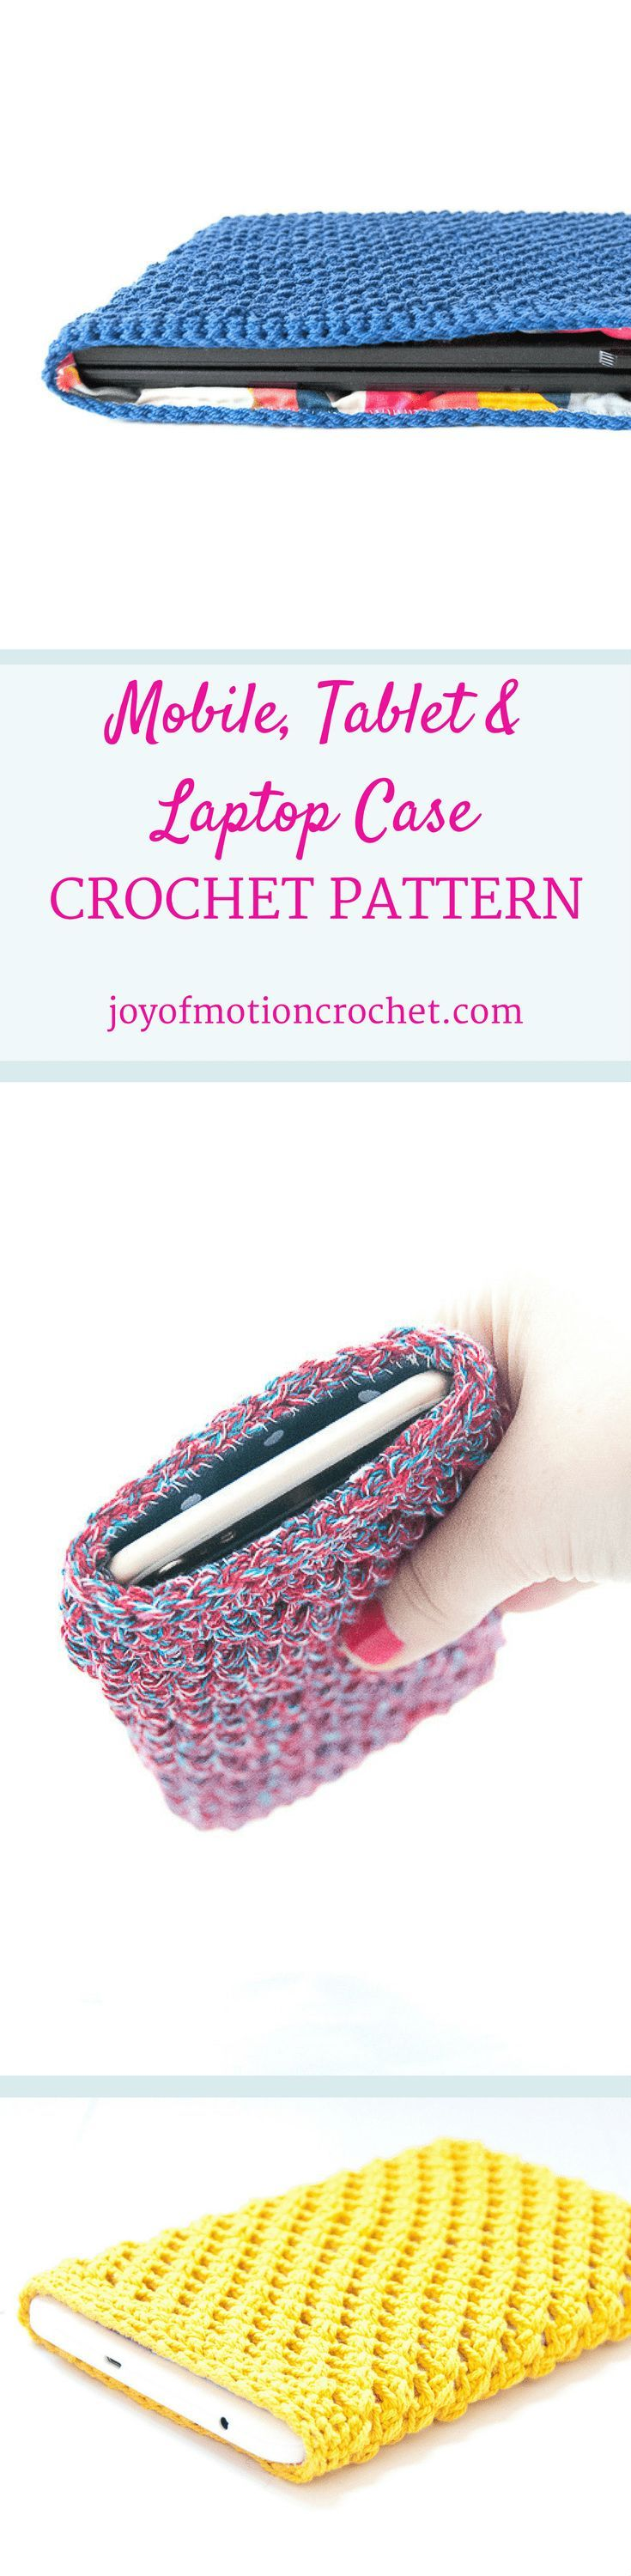 279 best Crochet - Utilitarian Stuff images on Pinterest | Crochet ...